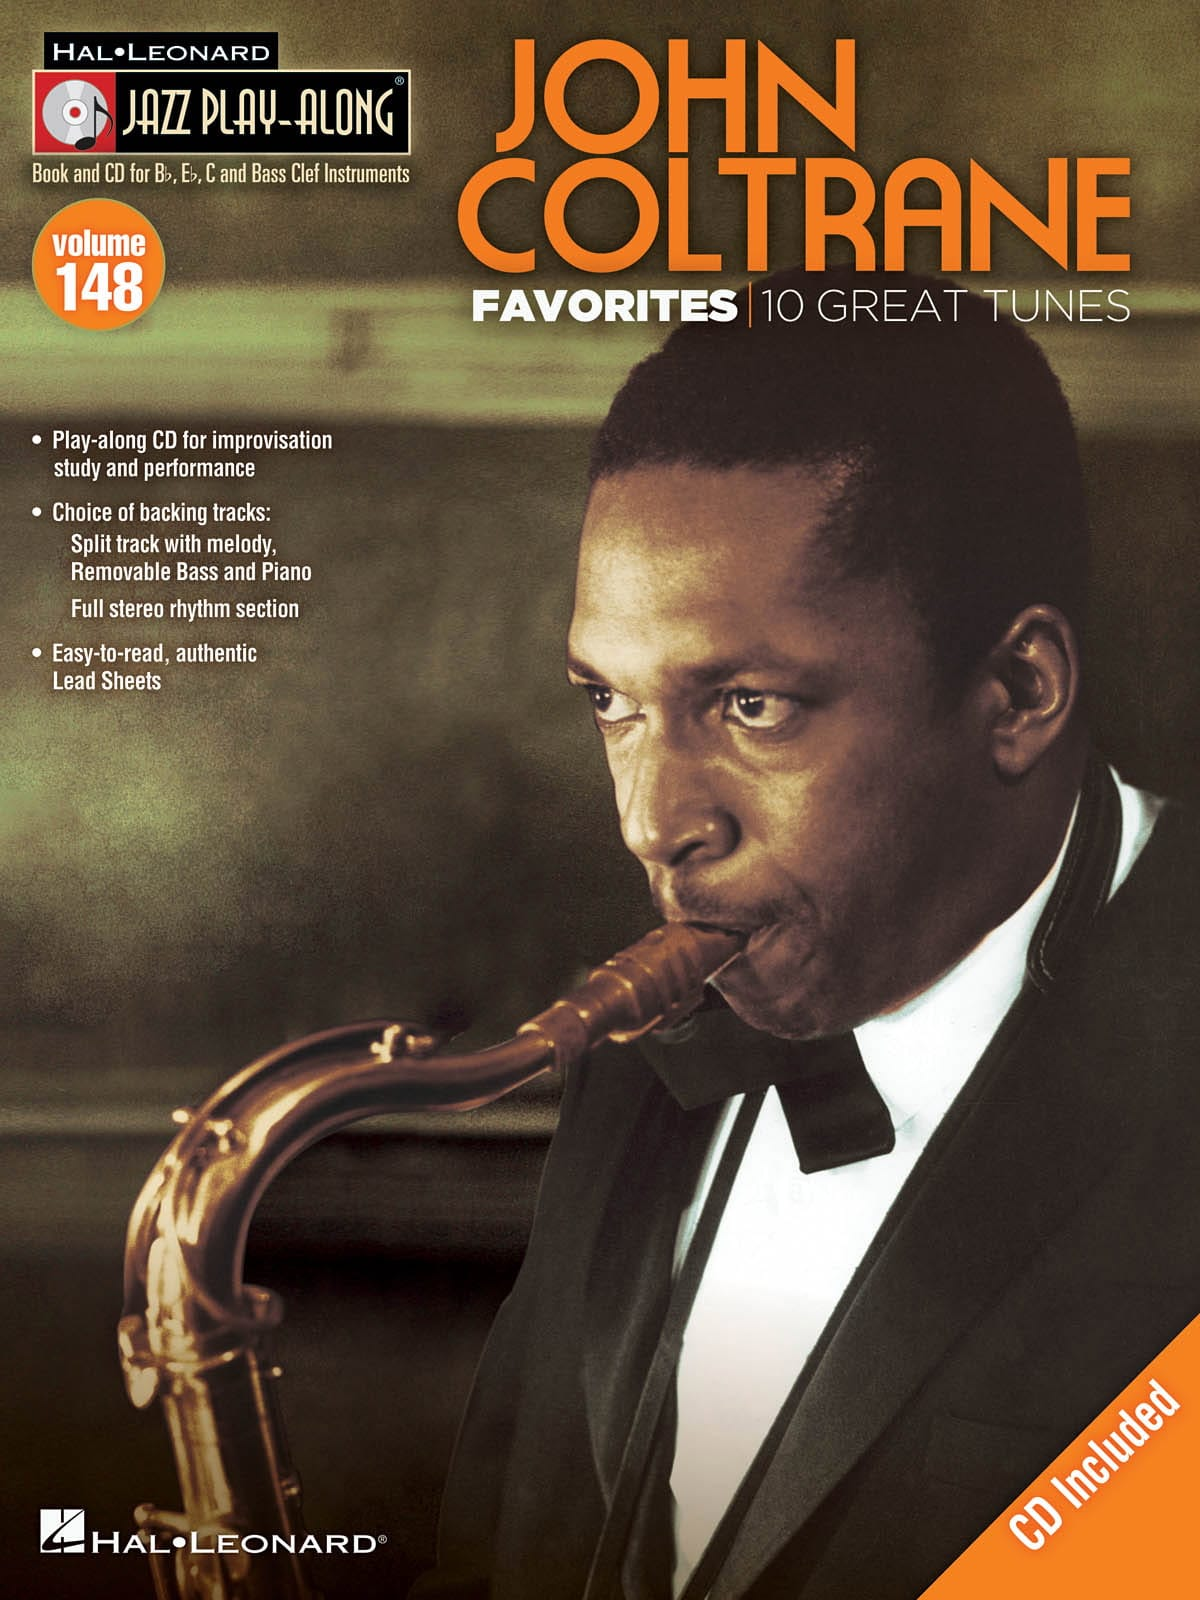 John Coltrane - Jazz play-along volume 148 - John Coltrane favorites - Partition - di-arezzo.fr